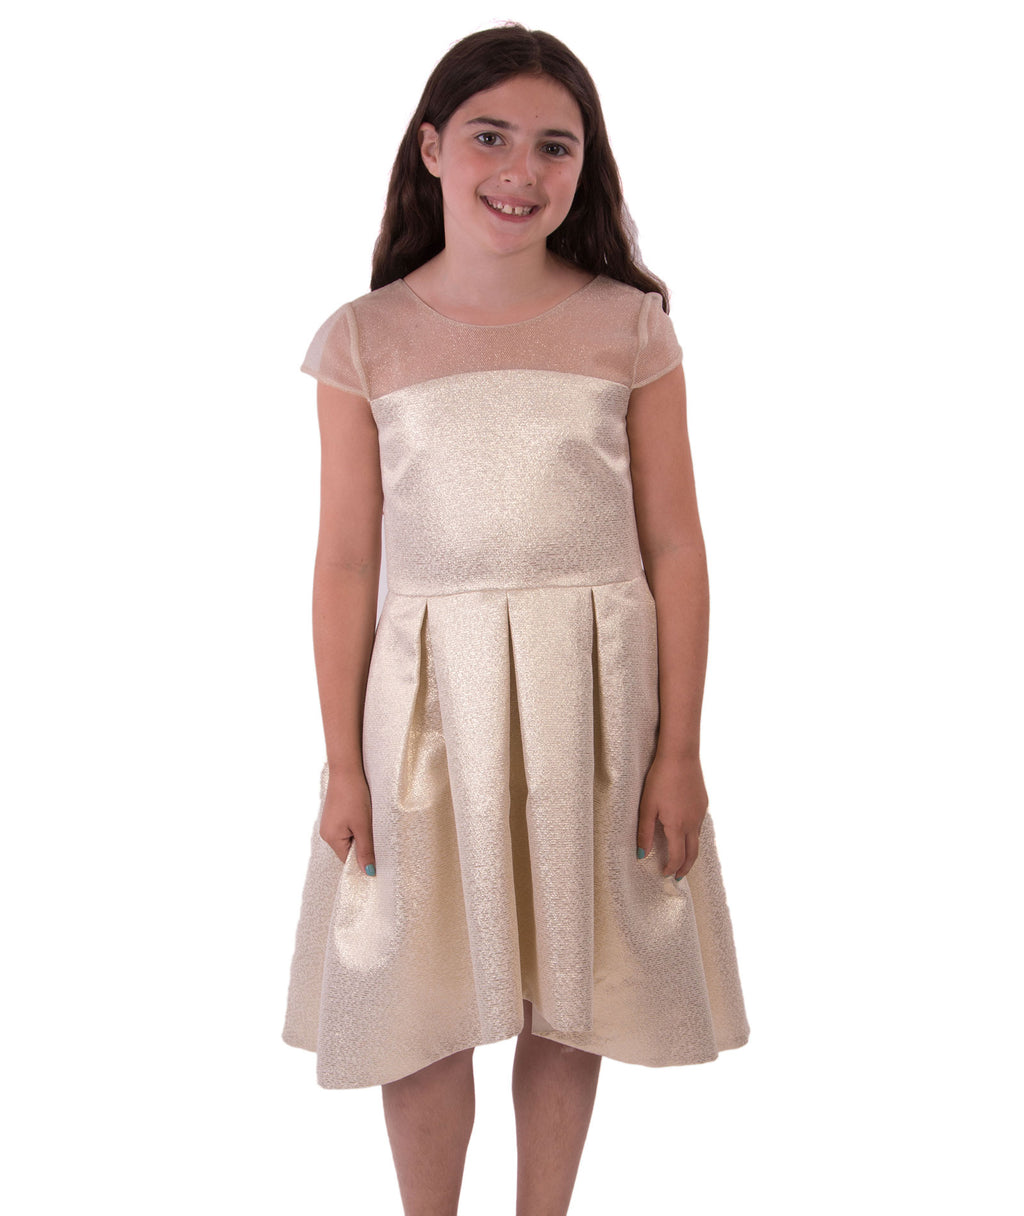 Zoe Ltd. Girls Gold Mesh Dress - Frankie's on the Park